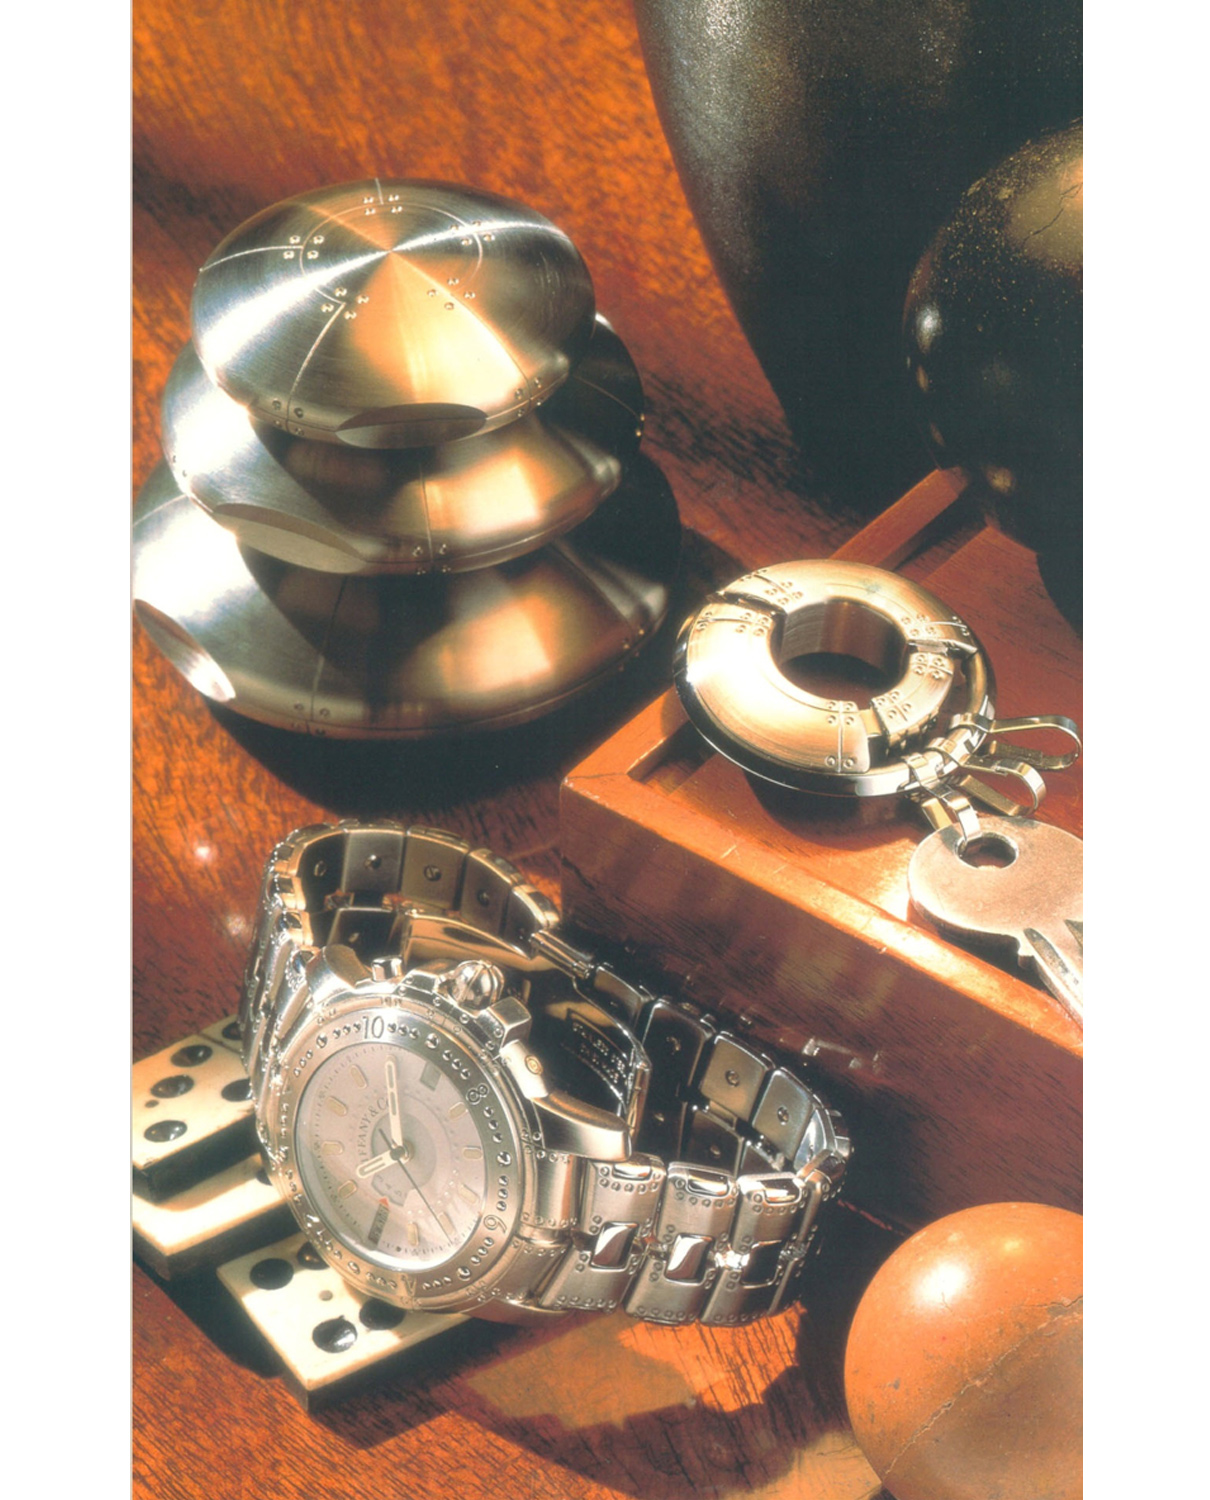 • Loring's 1997 Book: Tiffany's 20th Century: A Portrait of American Style. 3 Perisphere Nesting Boxes, Porthole Key Ring, World Time Automatic Watch.